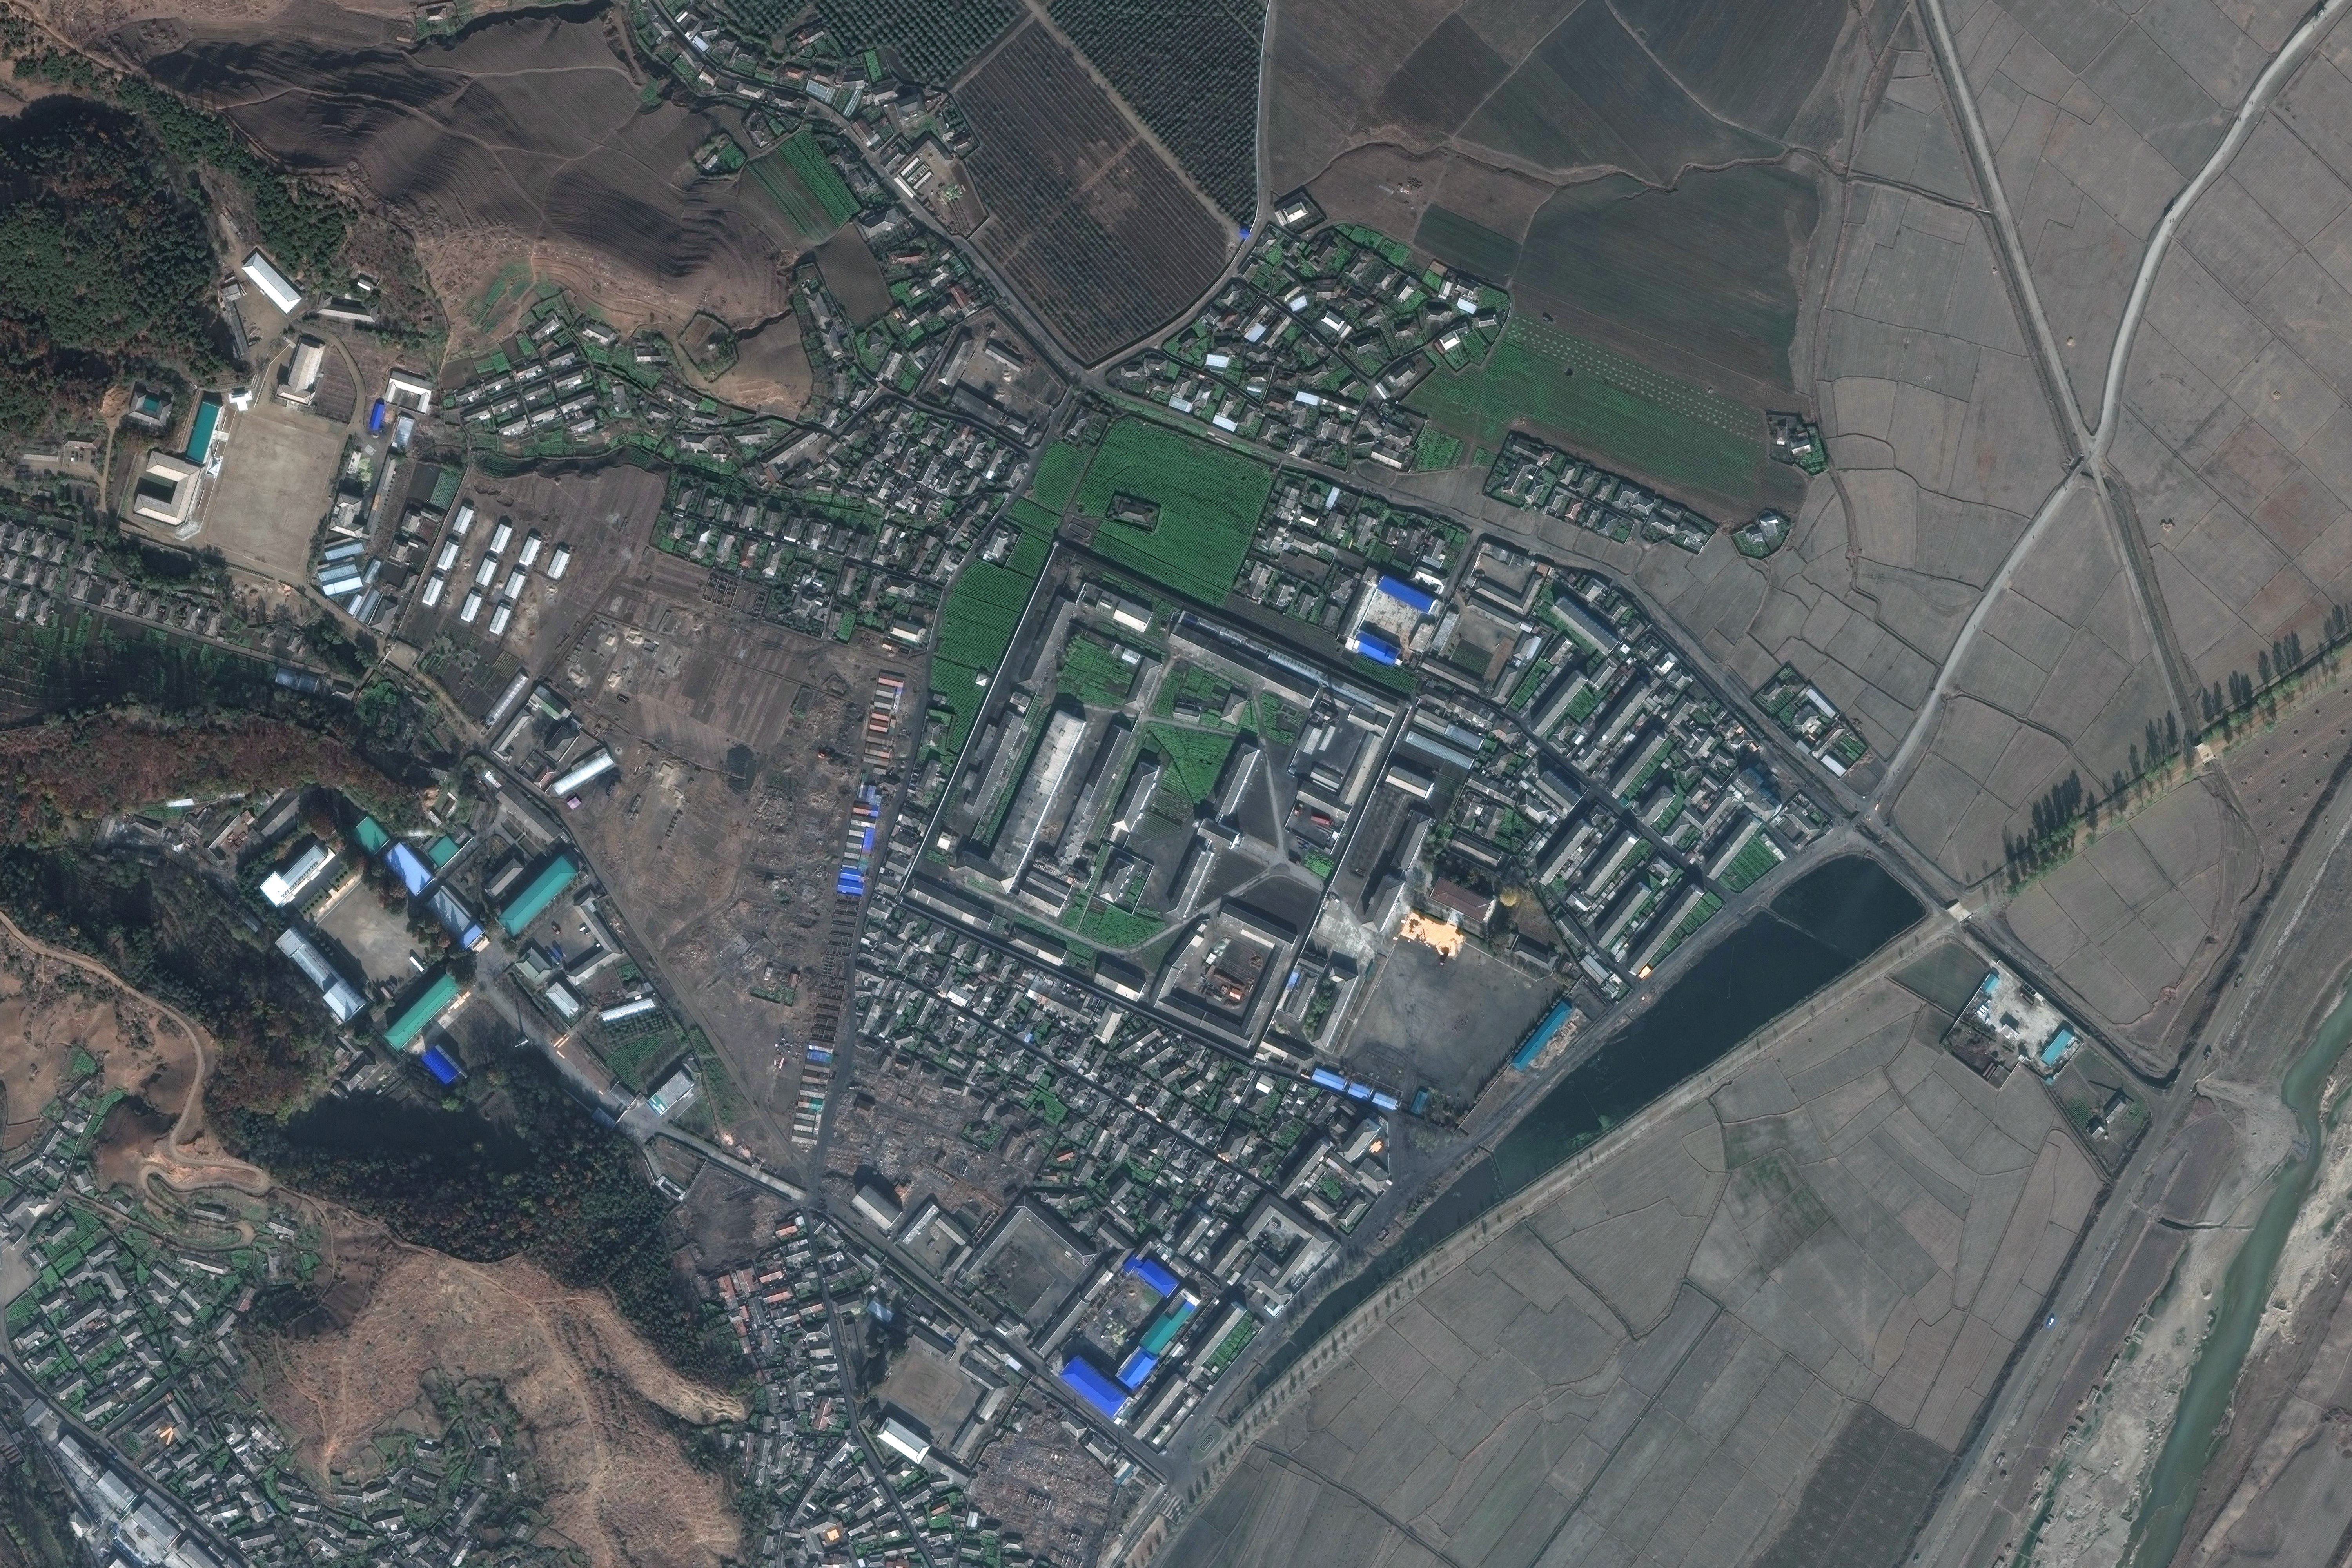 DigitalGlobe satellite imagery of Hamhung concentration camp (Kyo-hwa-so No. 15), a reeducation camp in North Korea, on November 4, 2017.